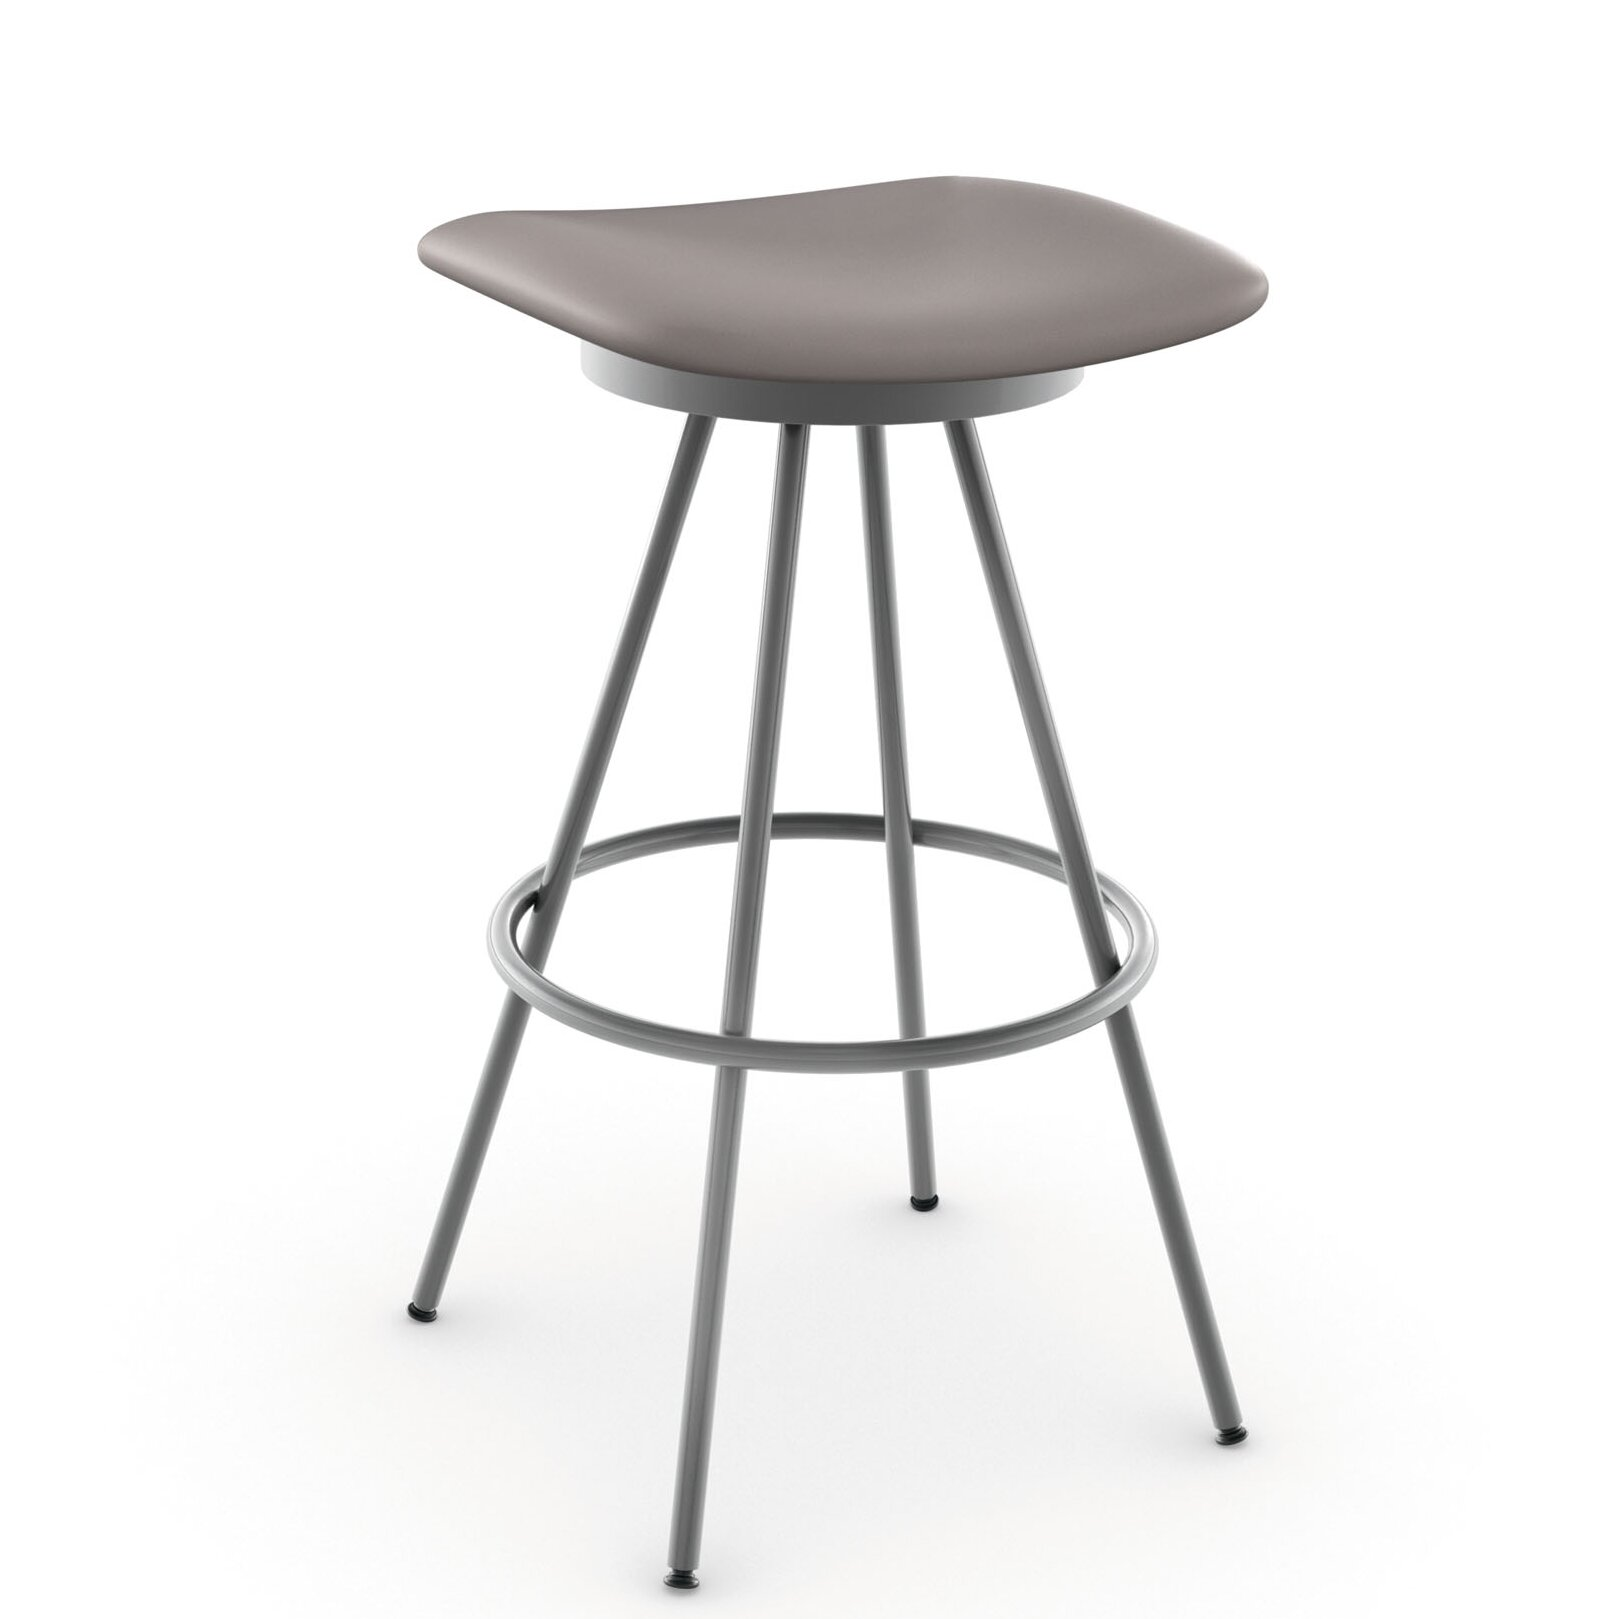 Amisco Beacon 30quot Swivel Bar Stool amp Reviews Wayfair : Amisco Beacon 30 Swivel Bar Stool from www.wayfair.com size 1619 x 1619 jpeg 112kB